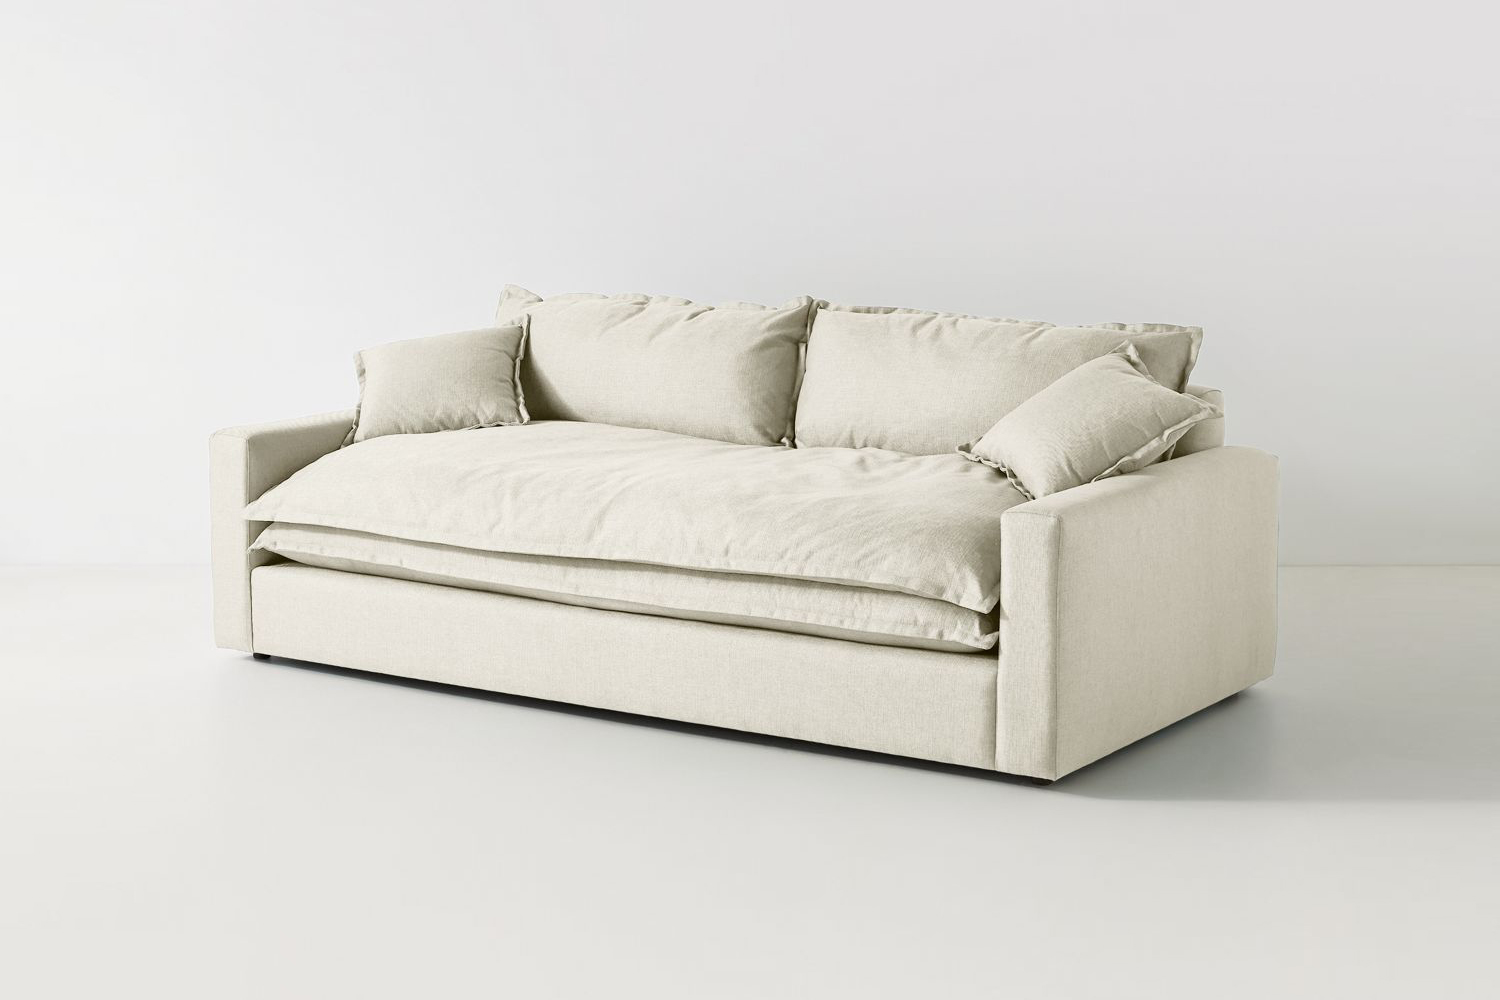 a similar low profile sofa with french seam details is the meriwether sofa avai 15